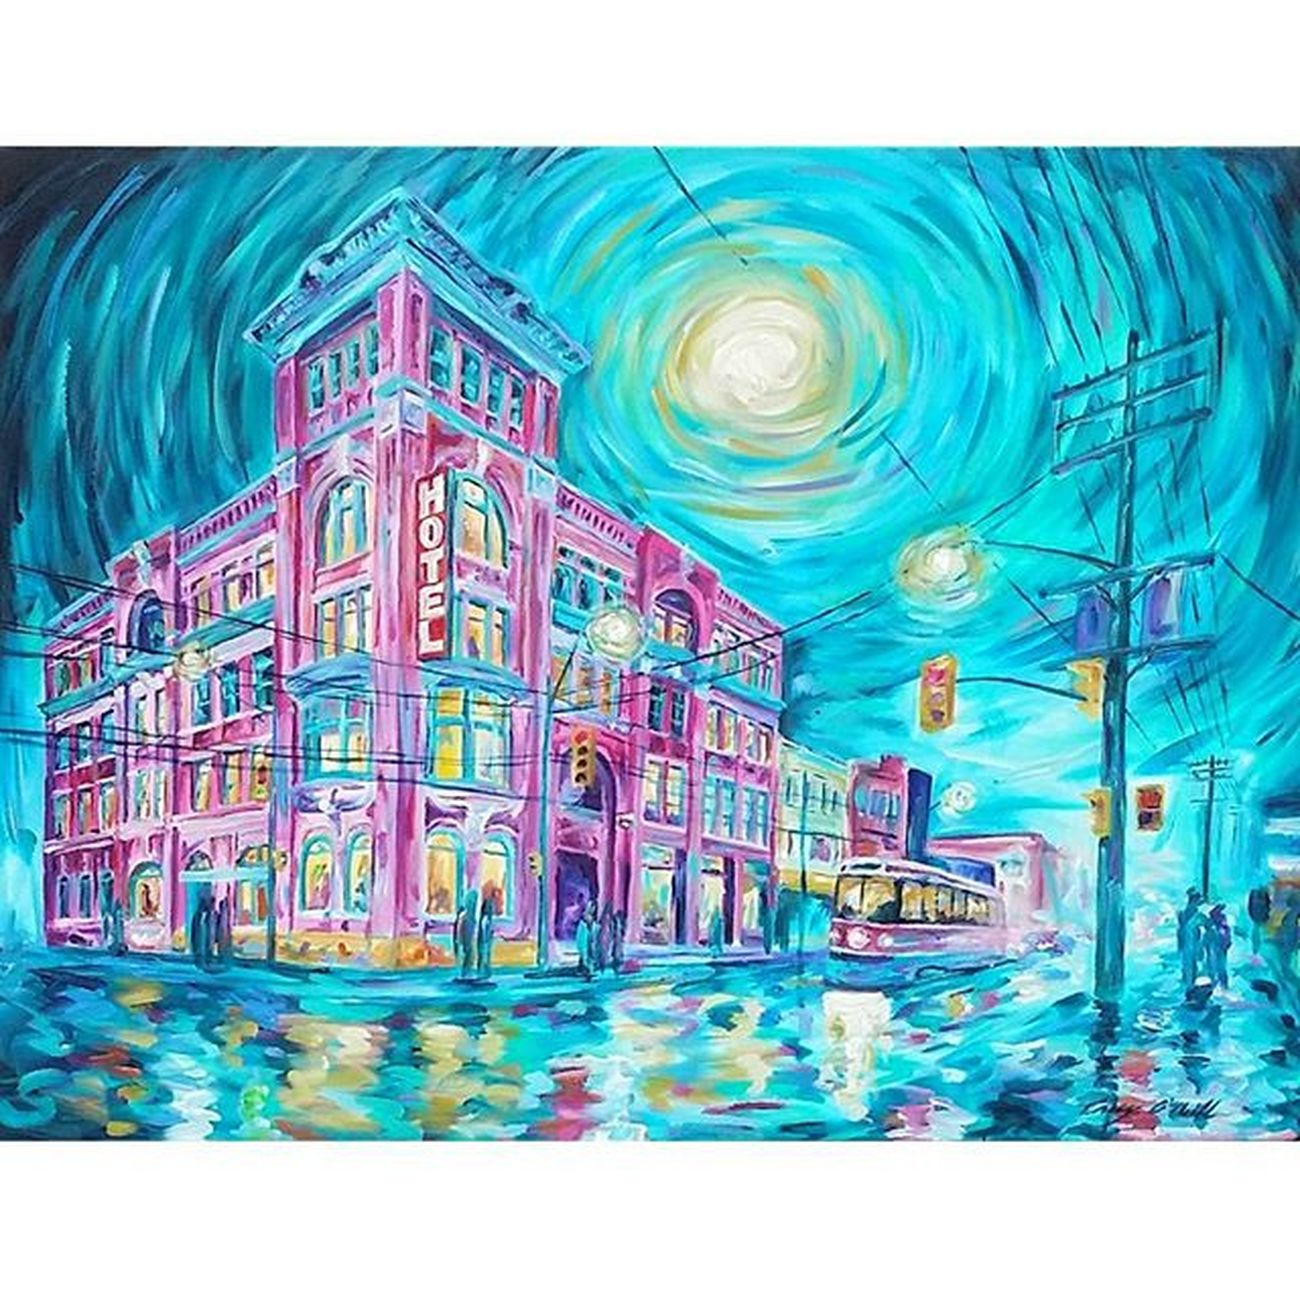 Available - Gladstone 30x40 Acrylic on stretched canvas. DM or email info@caseyoneillart.com. CaseyONeill Toronto Impressionism